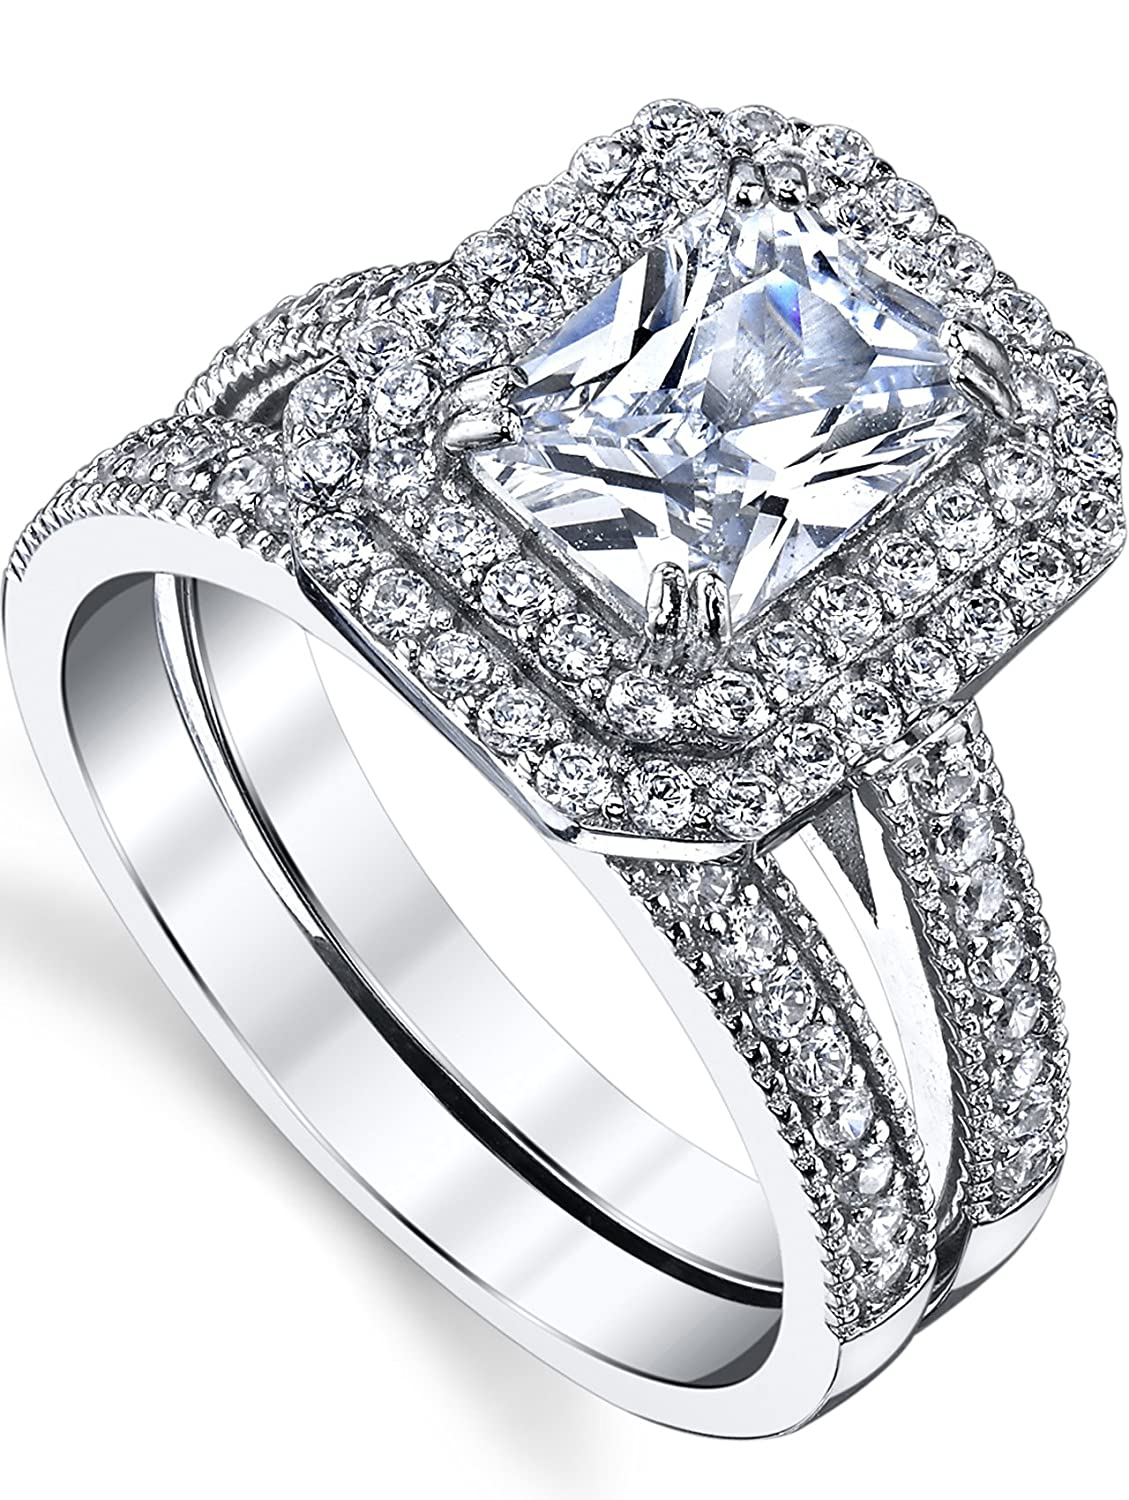 Bridal Set 2 Carat Emerald Cut Sterling Silver and Cubic Zirconia Wedding Ring Engagement Band